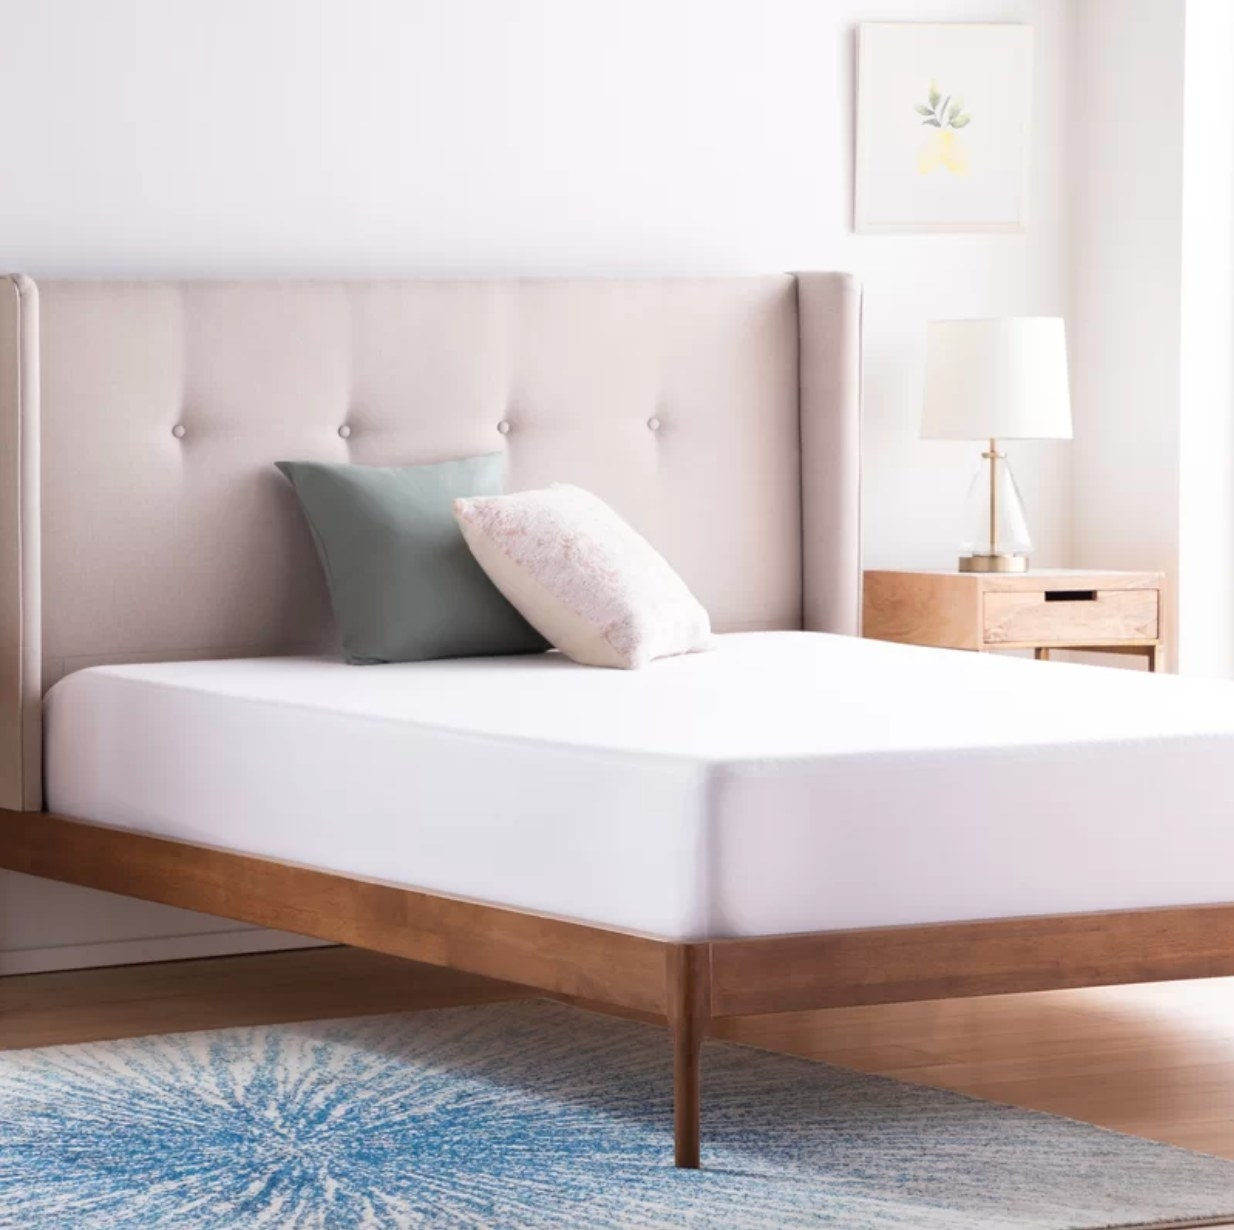 The mattress protector being used on a bed